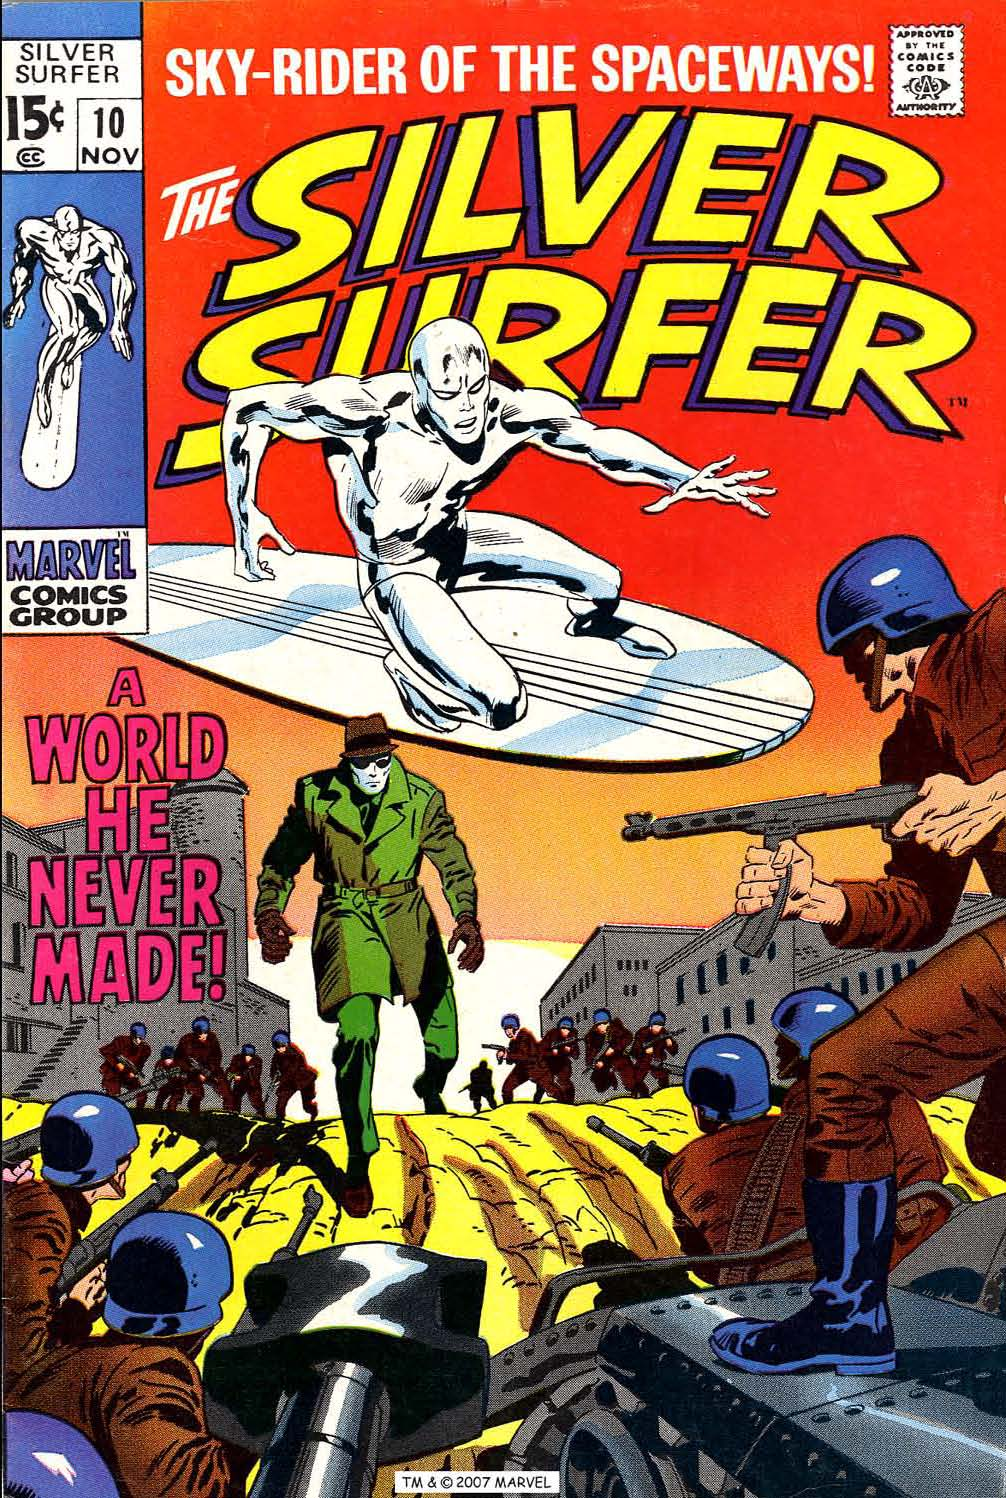 Read online Silver Surfer (1968) comic -  Issue #10 - 1